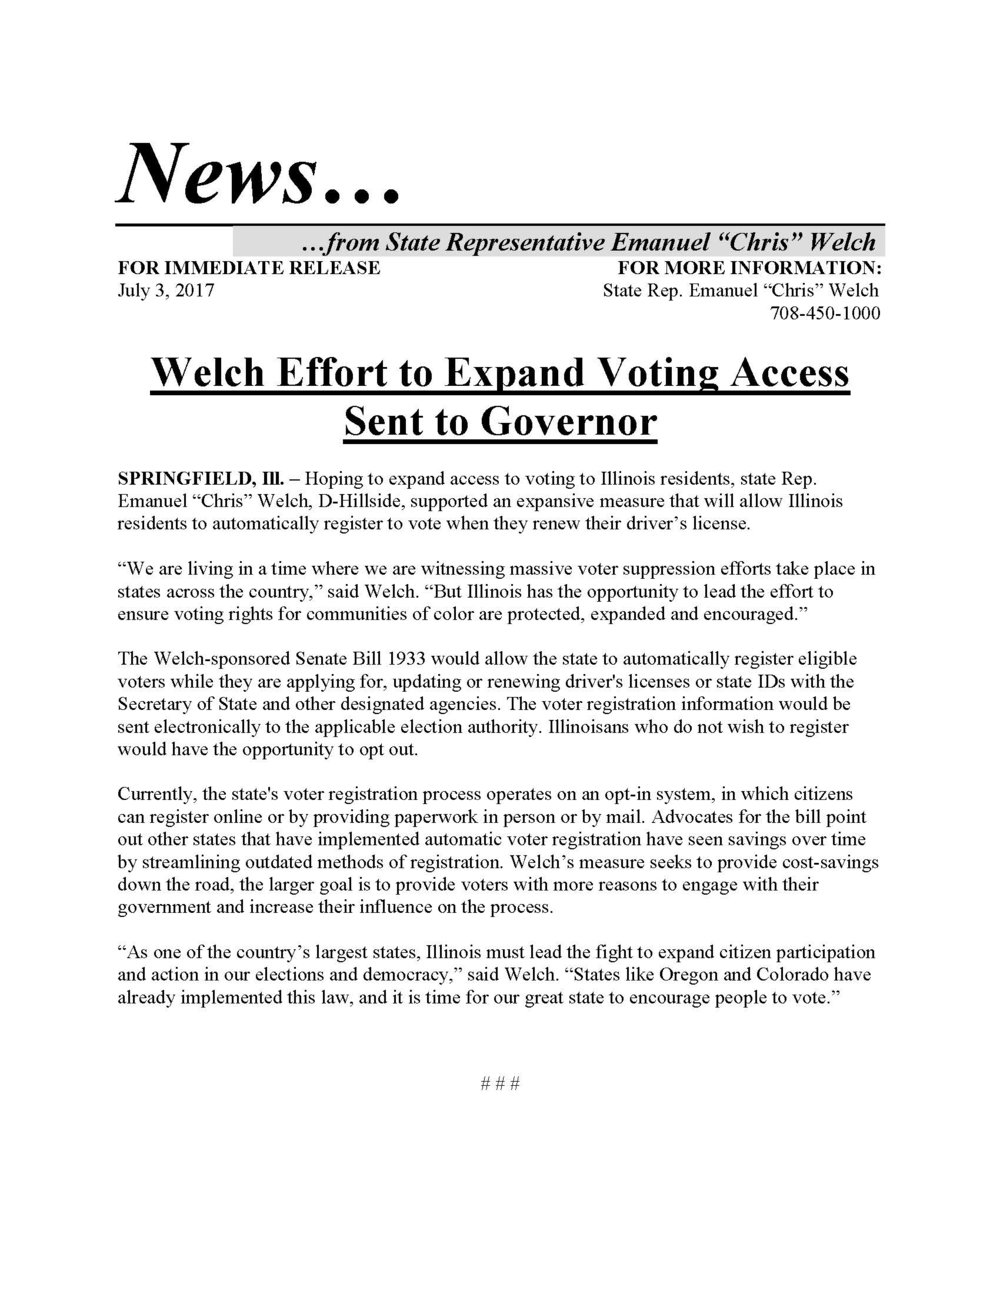 Welch Effort to Expand Voting Access Sent to Governor  (July 3, 2017)